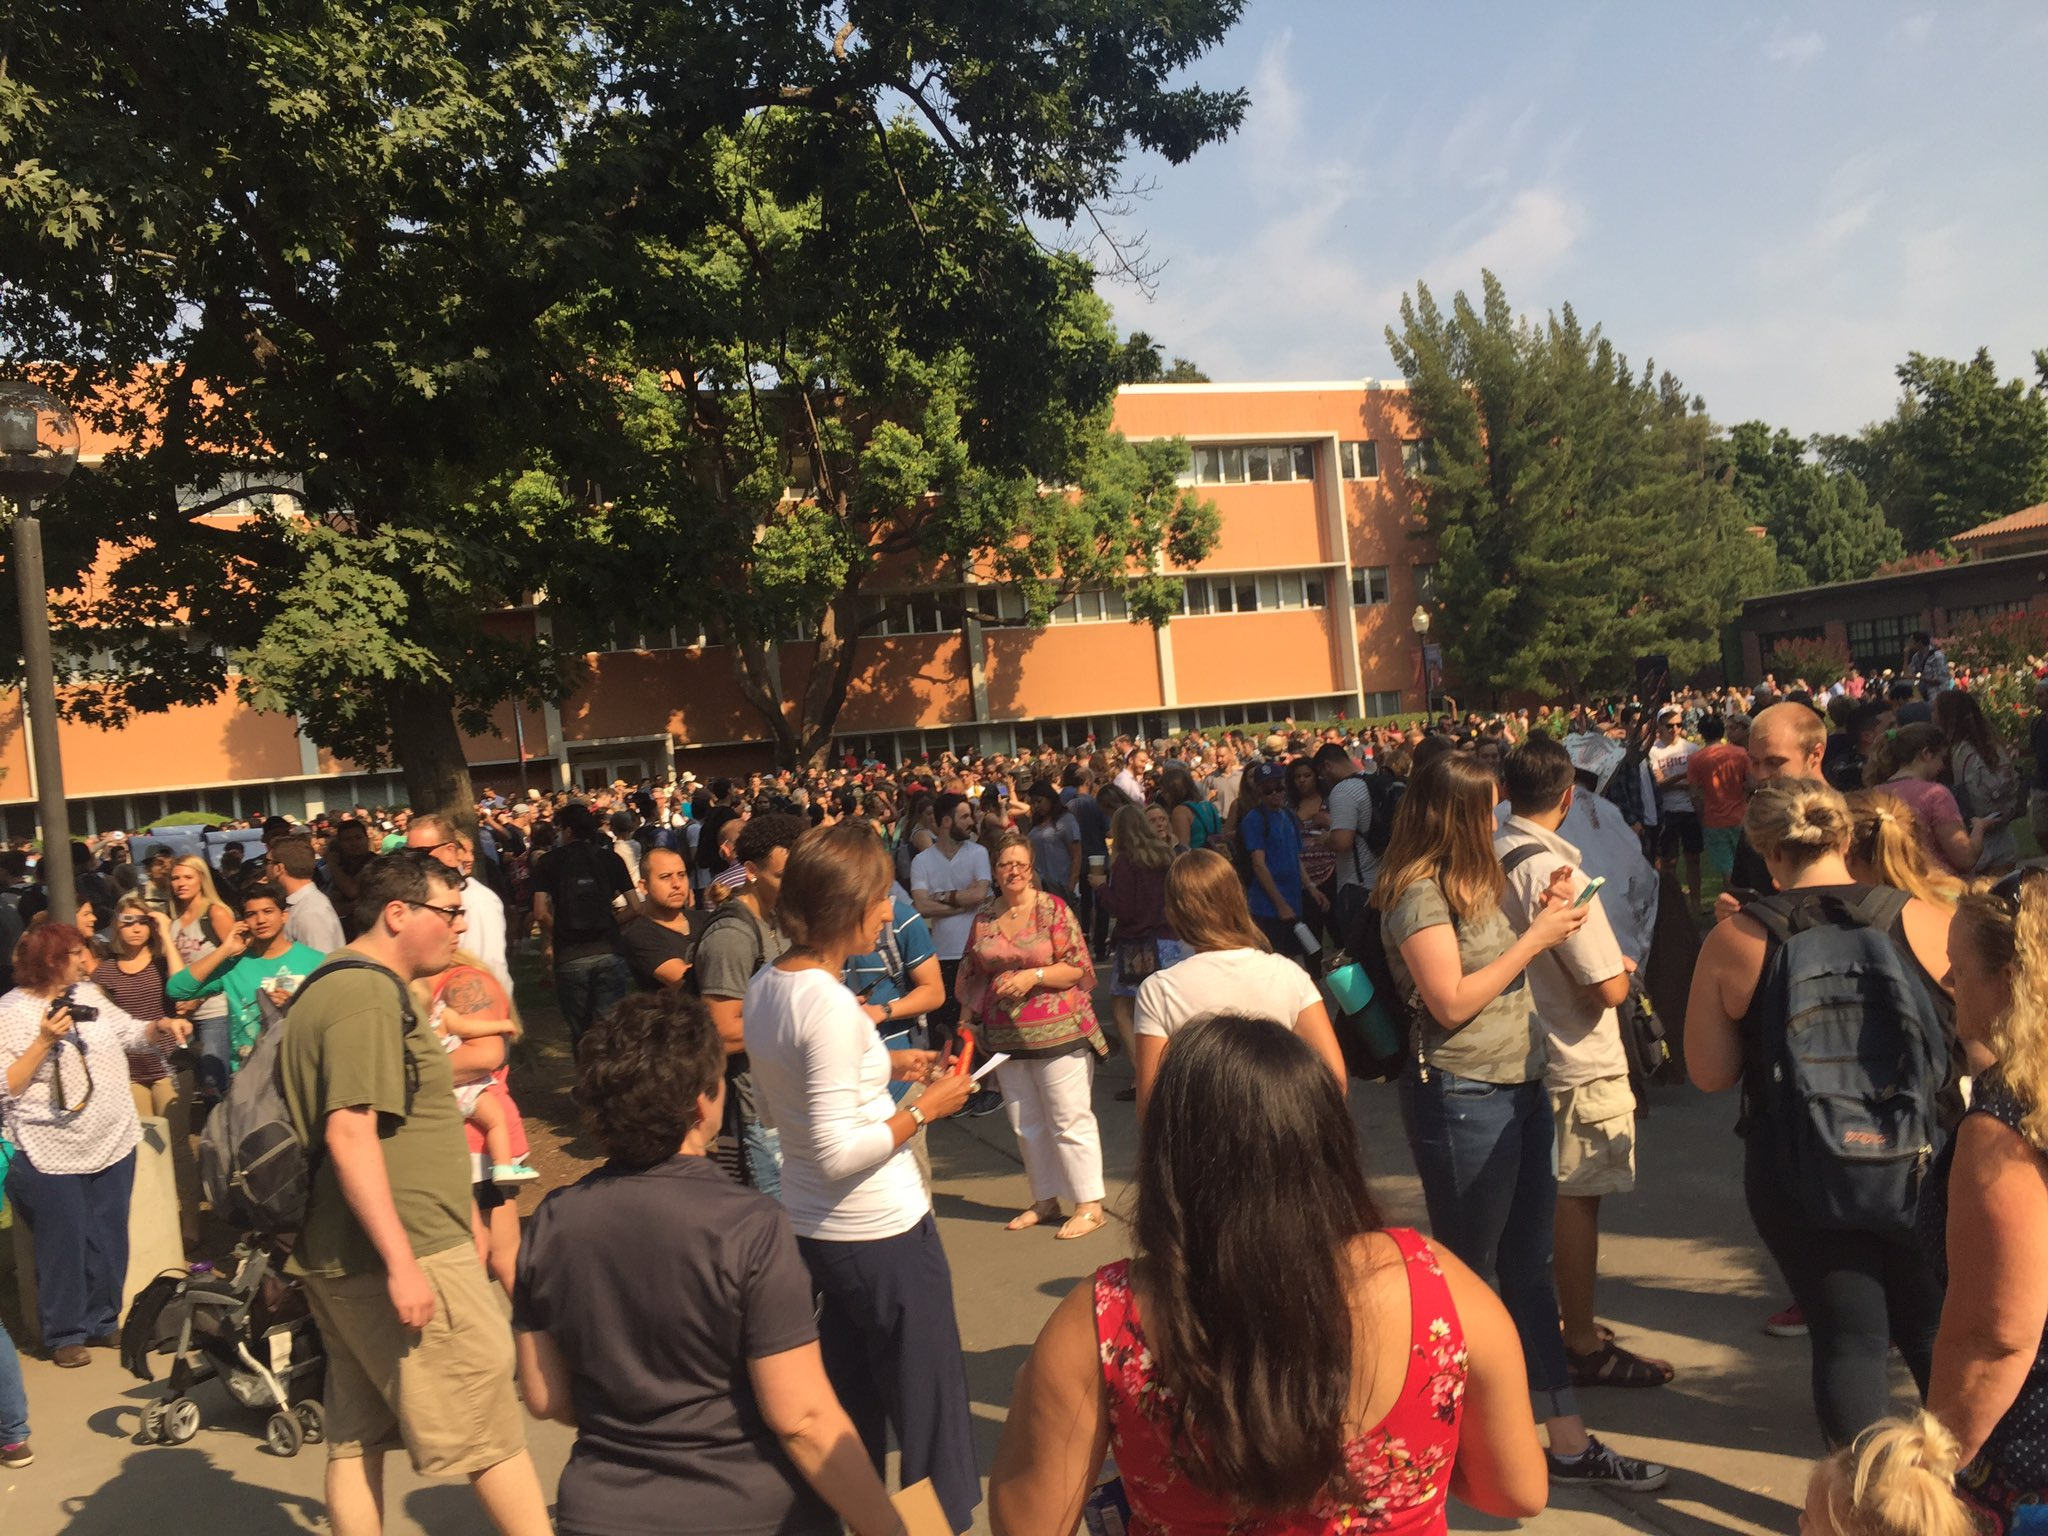 5 mins away from 85% coverage of this #SolarEclipse. Hundreds of Chico State students are waiting with excitement. https://t.co/DXWQYwxdQN